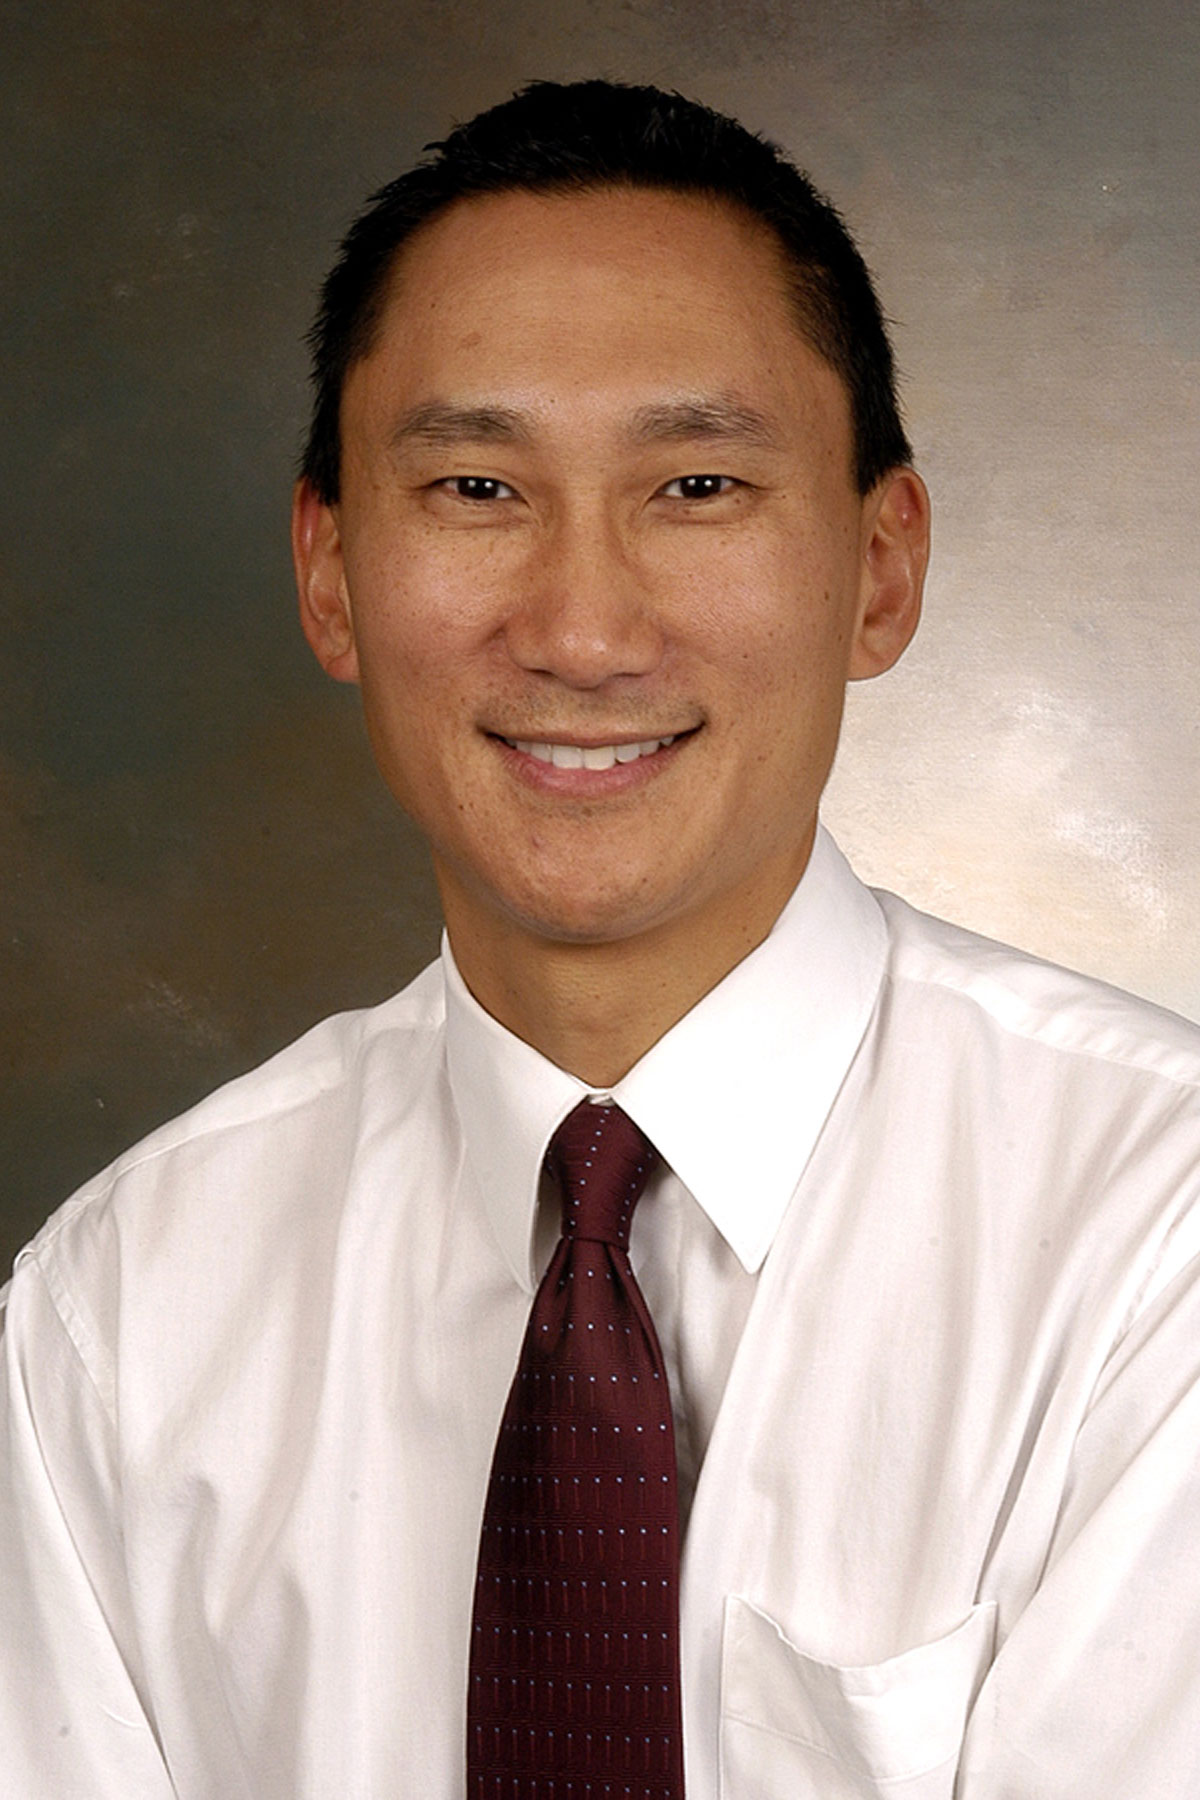 A photo of Daniel Choo.